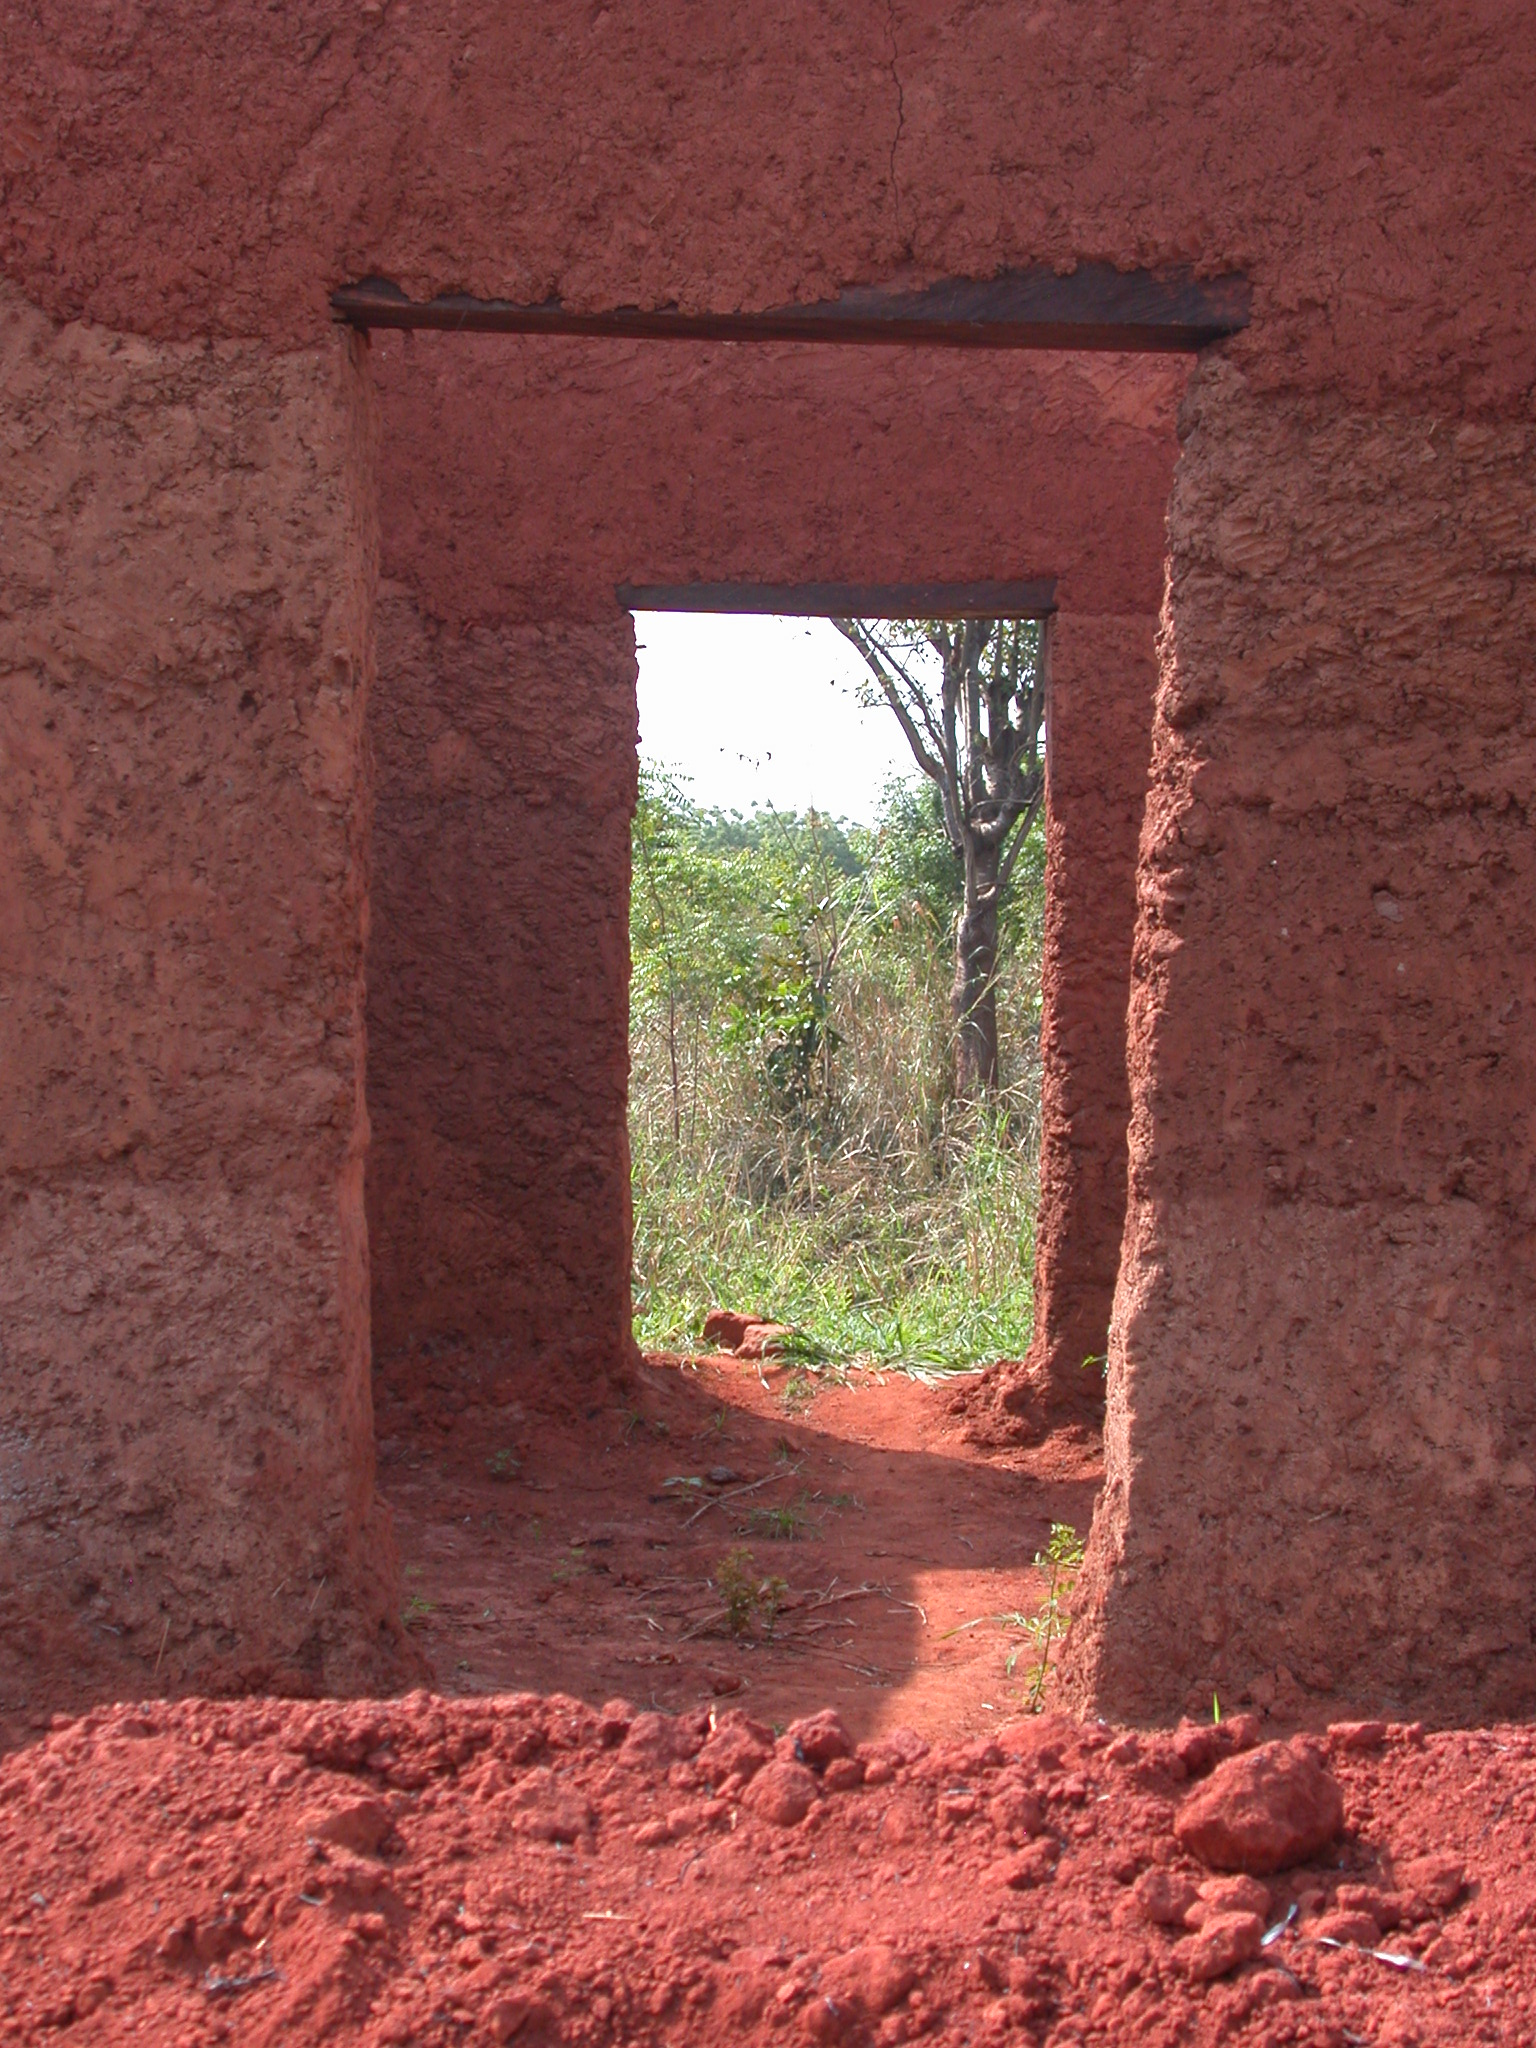 Rear Doors of Compound, Palace of King Houegbadja, Abomey, Benin